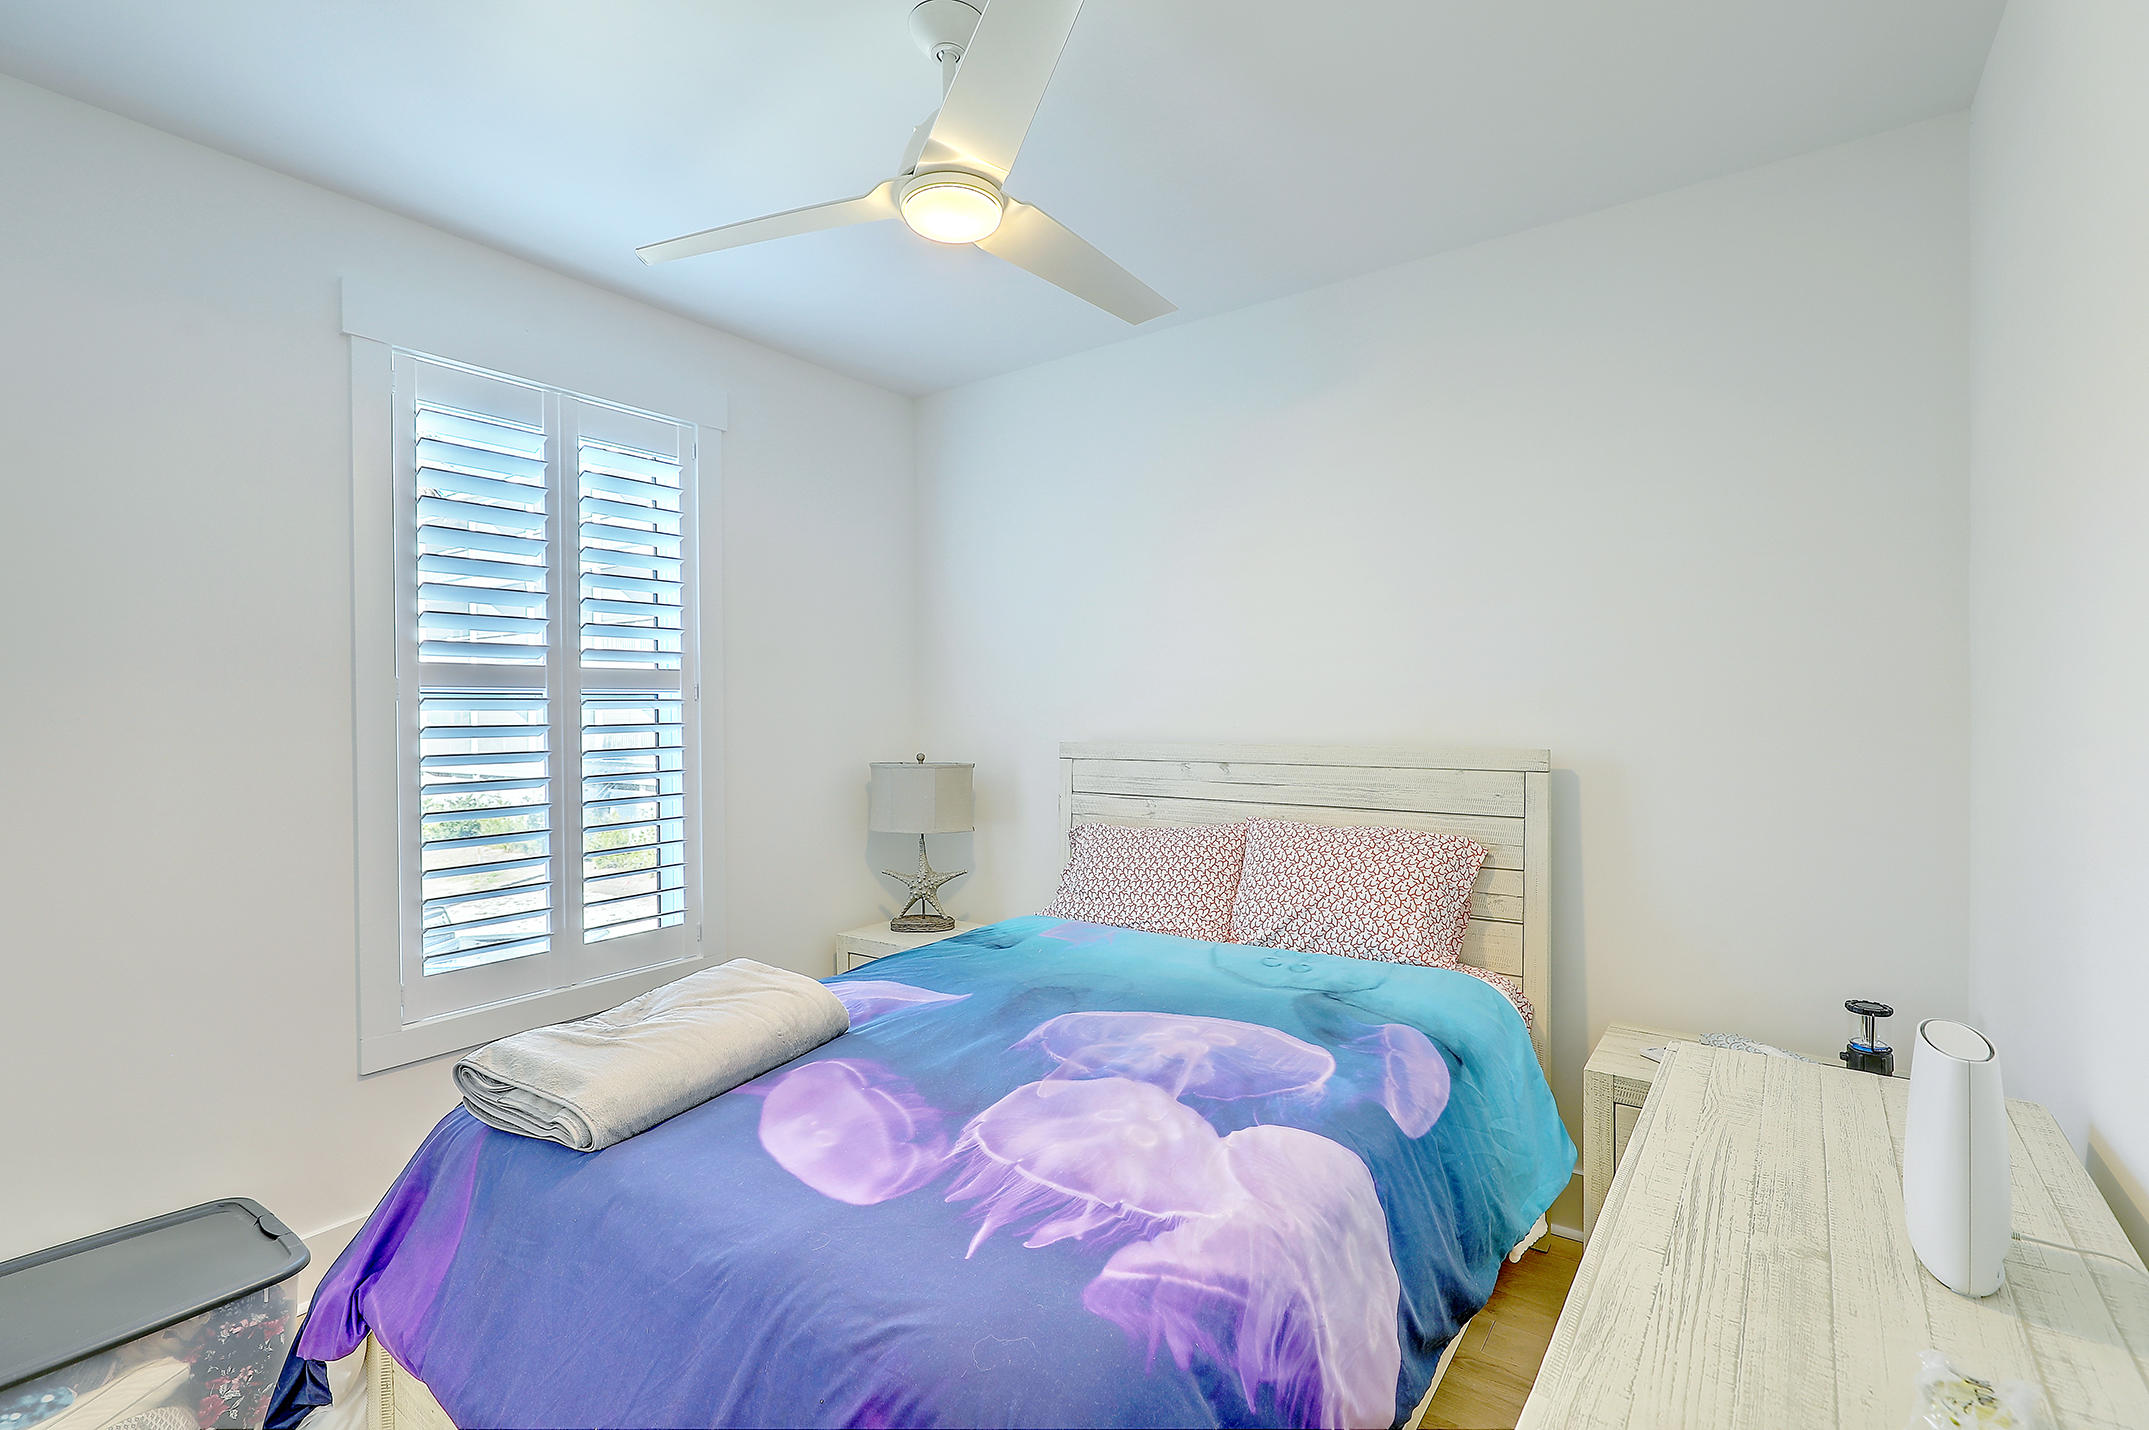 Mariners Cay Homes For Sale - 1002 Mariners Cay, Folly Beach, SC - 0